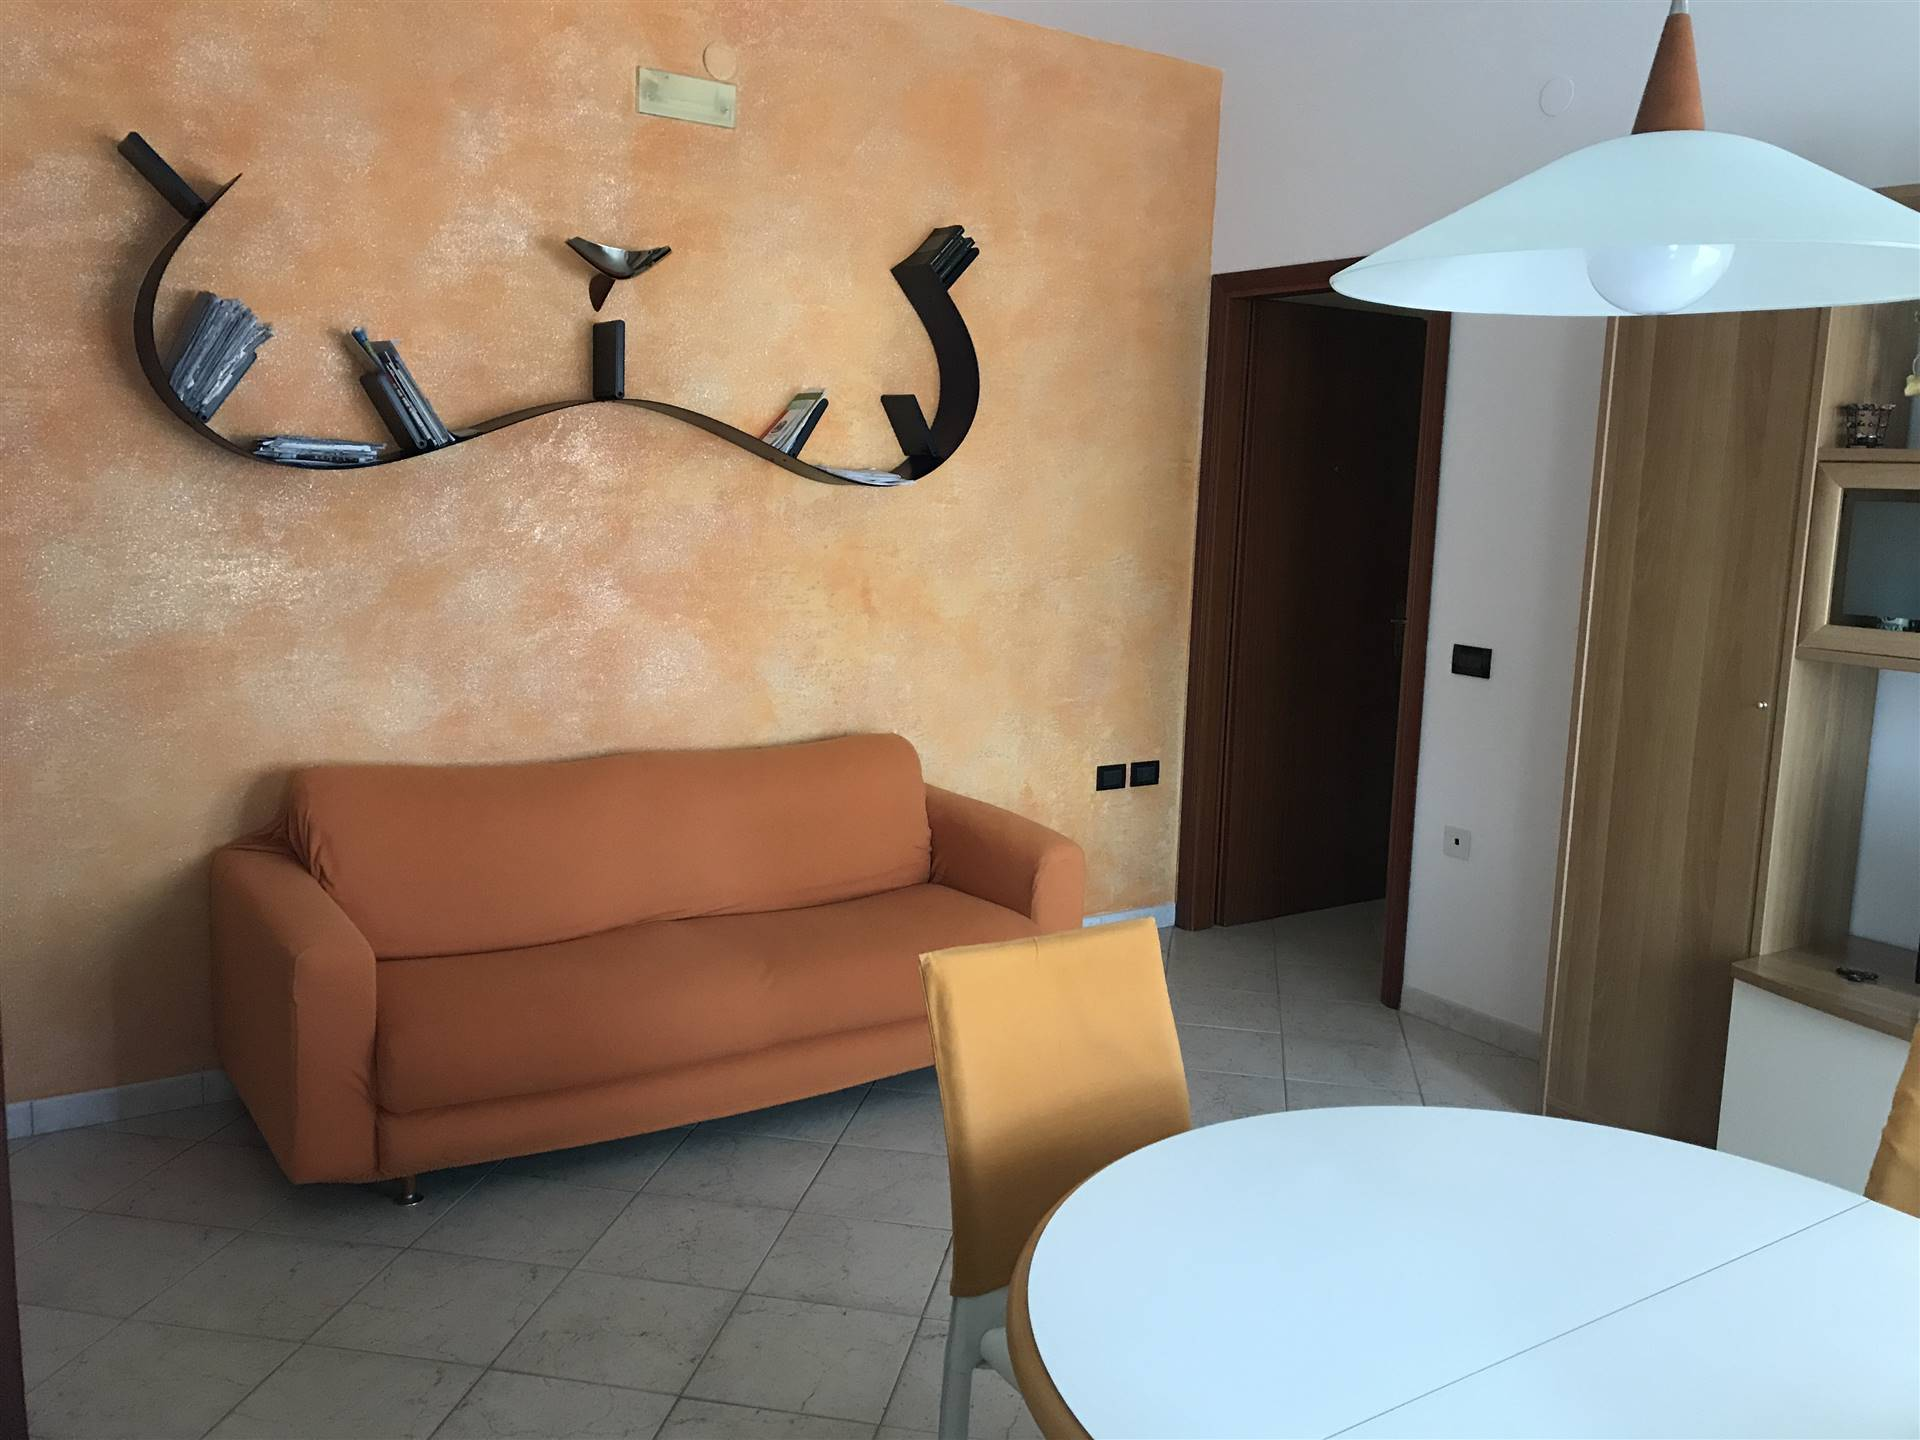 SANTANNA, CHIOGGIA, Apartment for sale of 60 Sq. mt., Good condition, Heating Individual heating system, Energetic class: G, placed at 2° on 3,